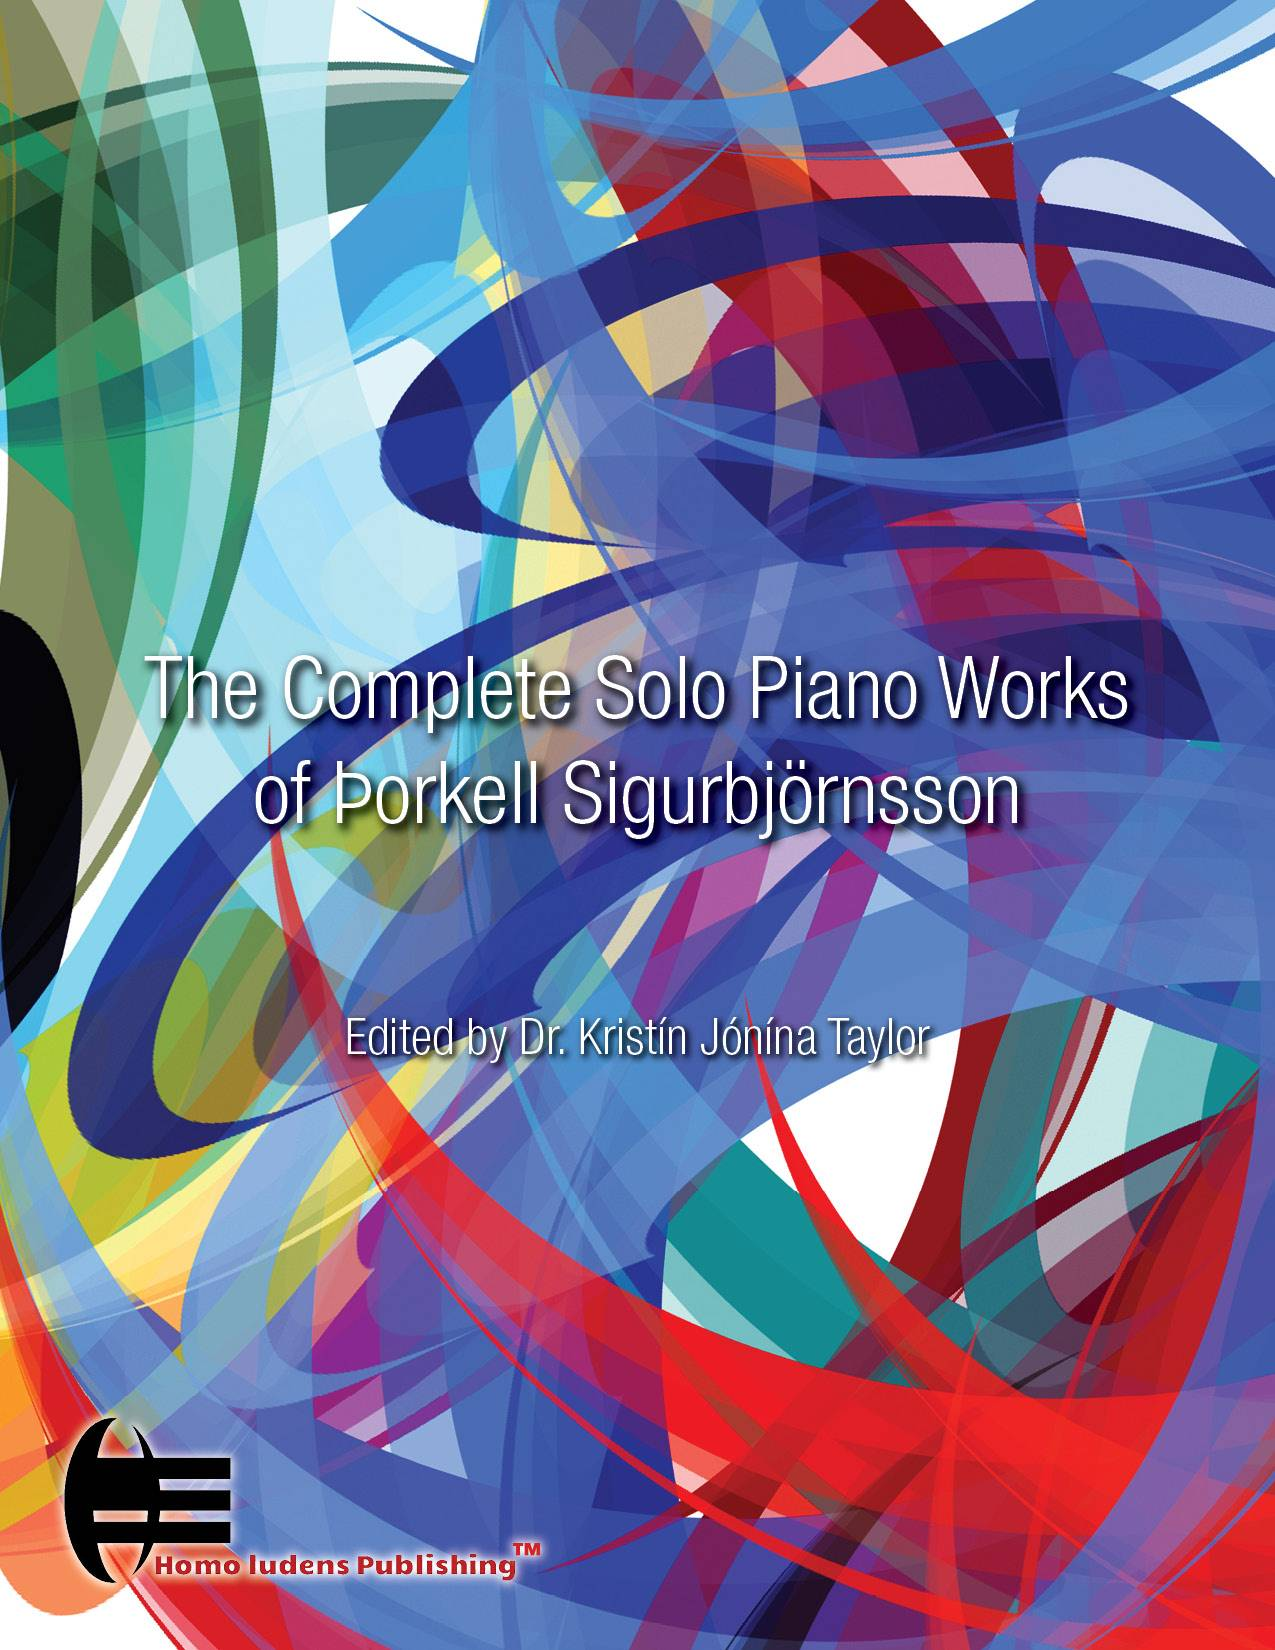 The Complete Solo Piano Works of Þorkell Sigurbjörnsson